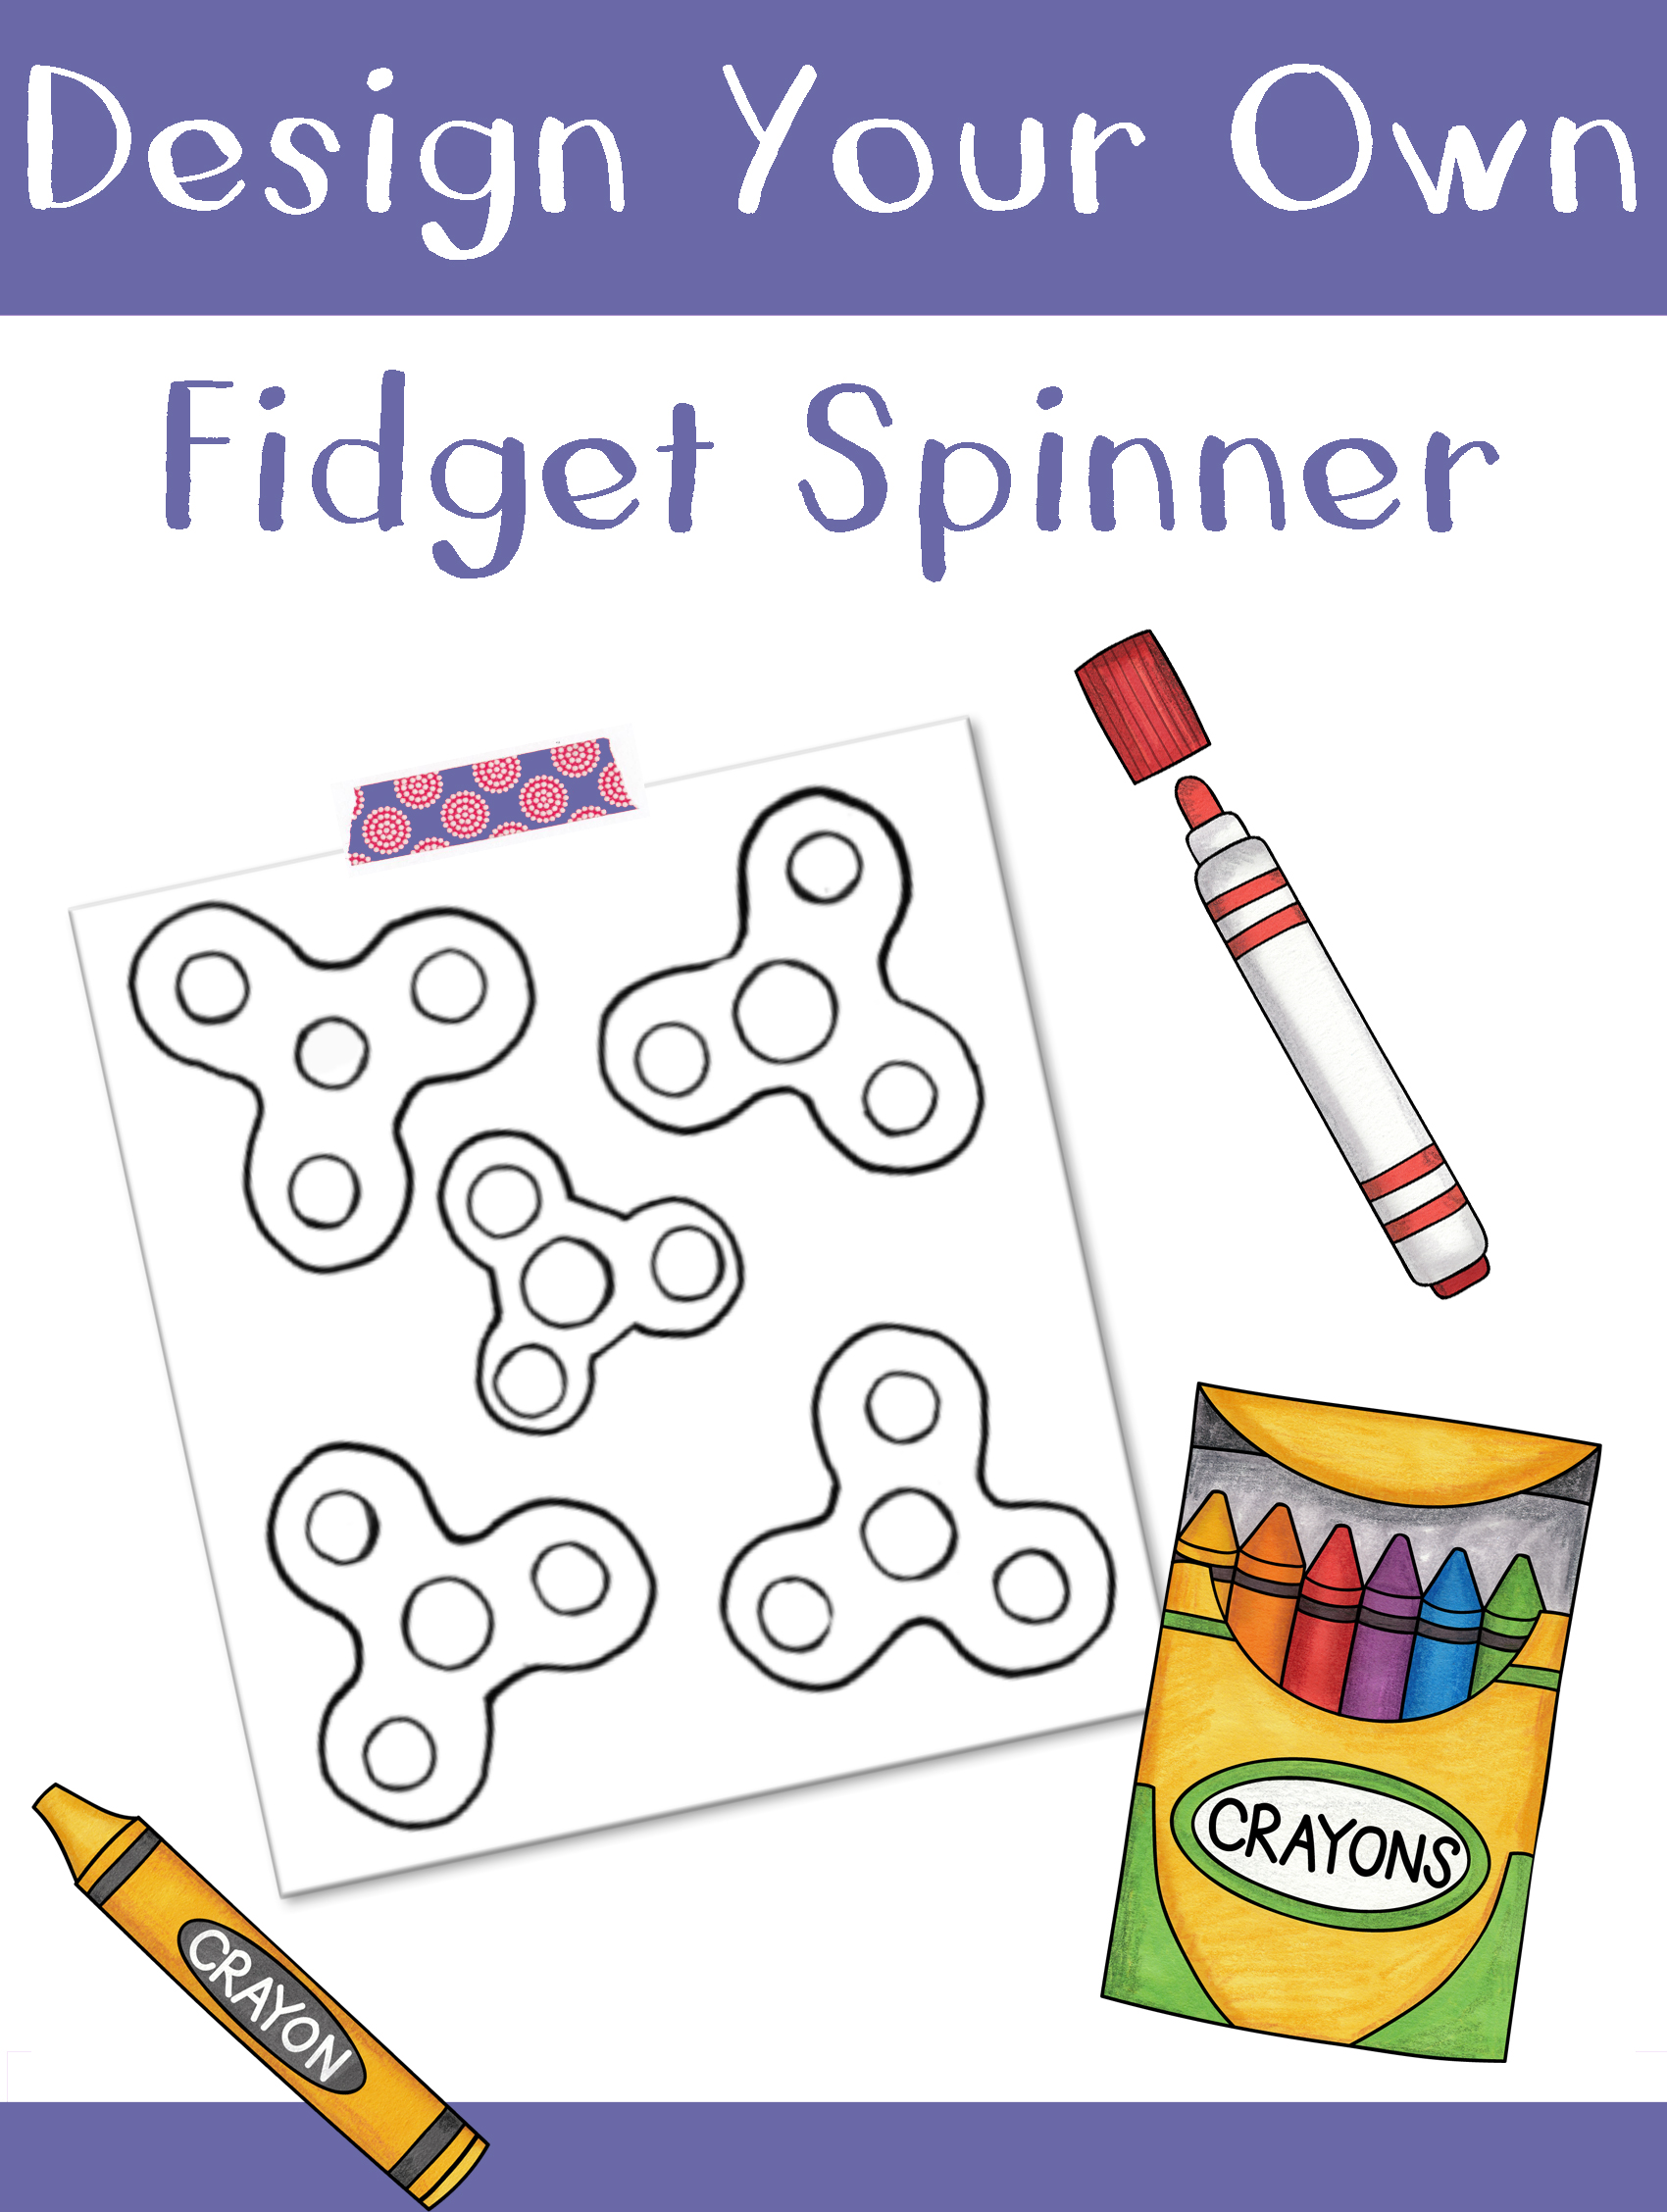 Design Your Own Fidget Spinner Free Download Art Is